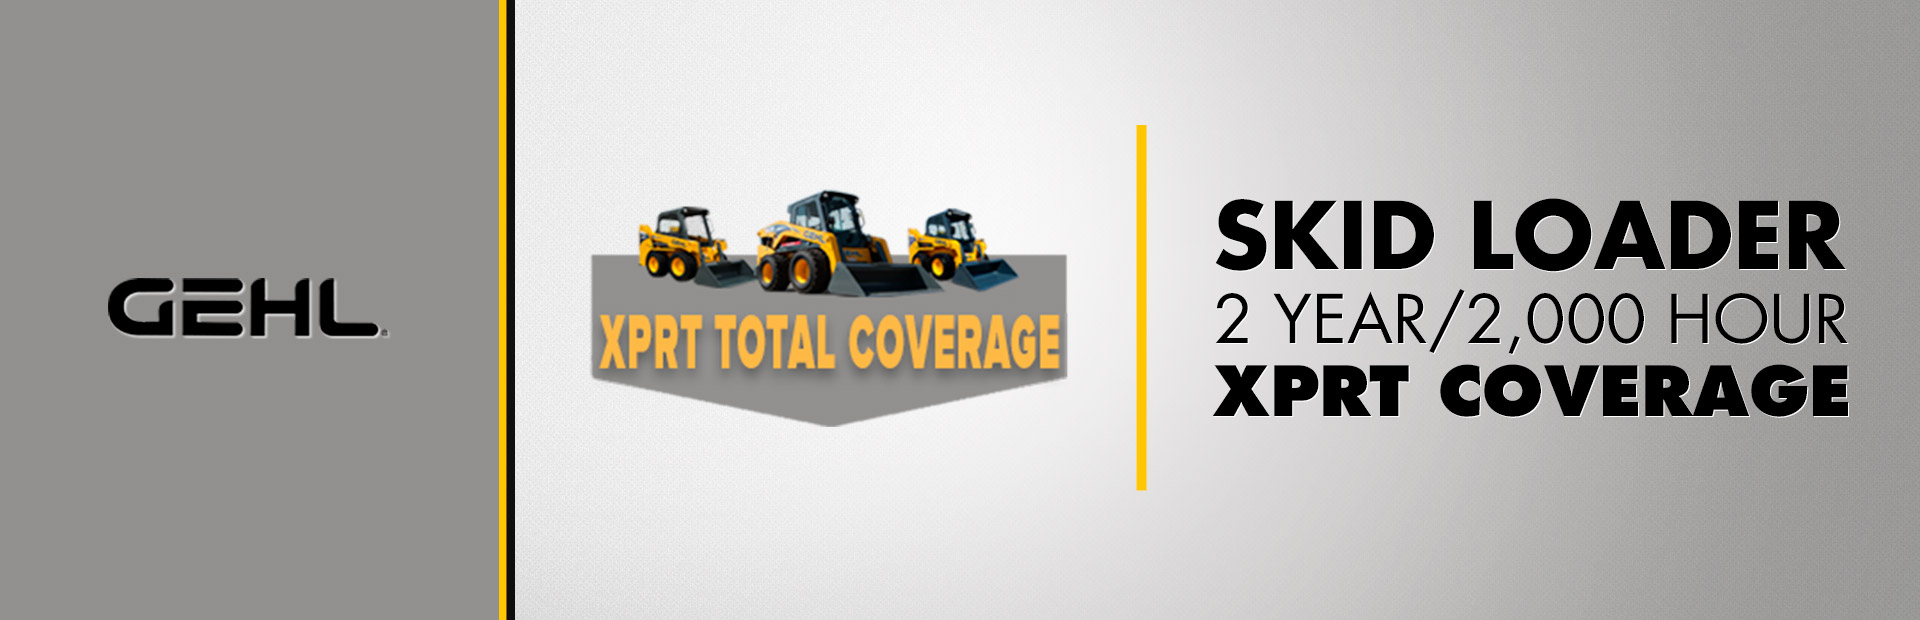 Gehl: Skid Loader - 2 Year / 2,000 Hour XPRT Coverage